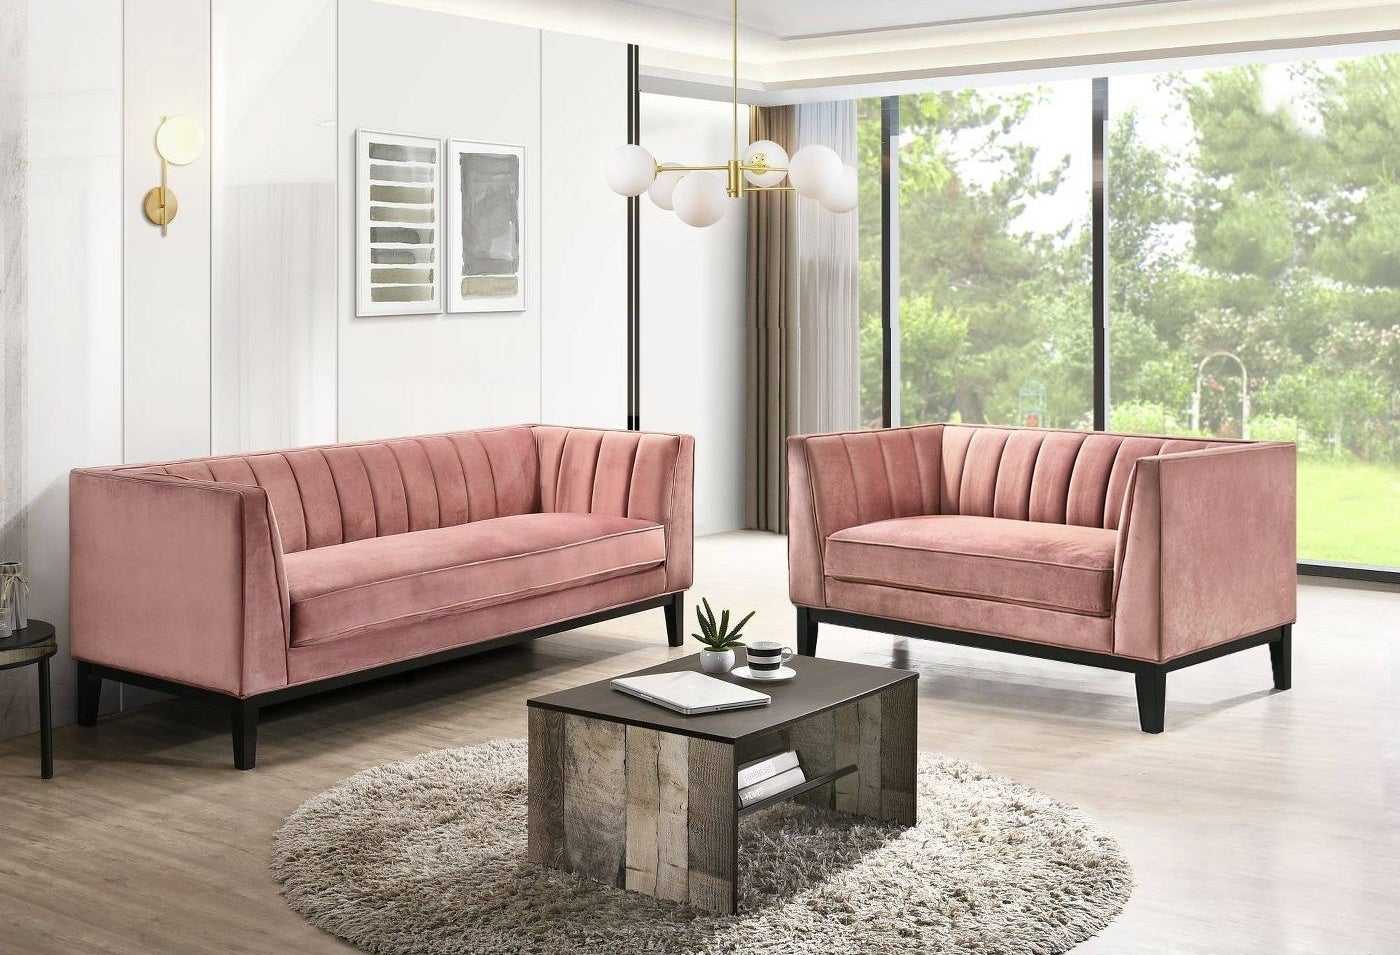 two pink velvet couches in a living room